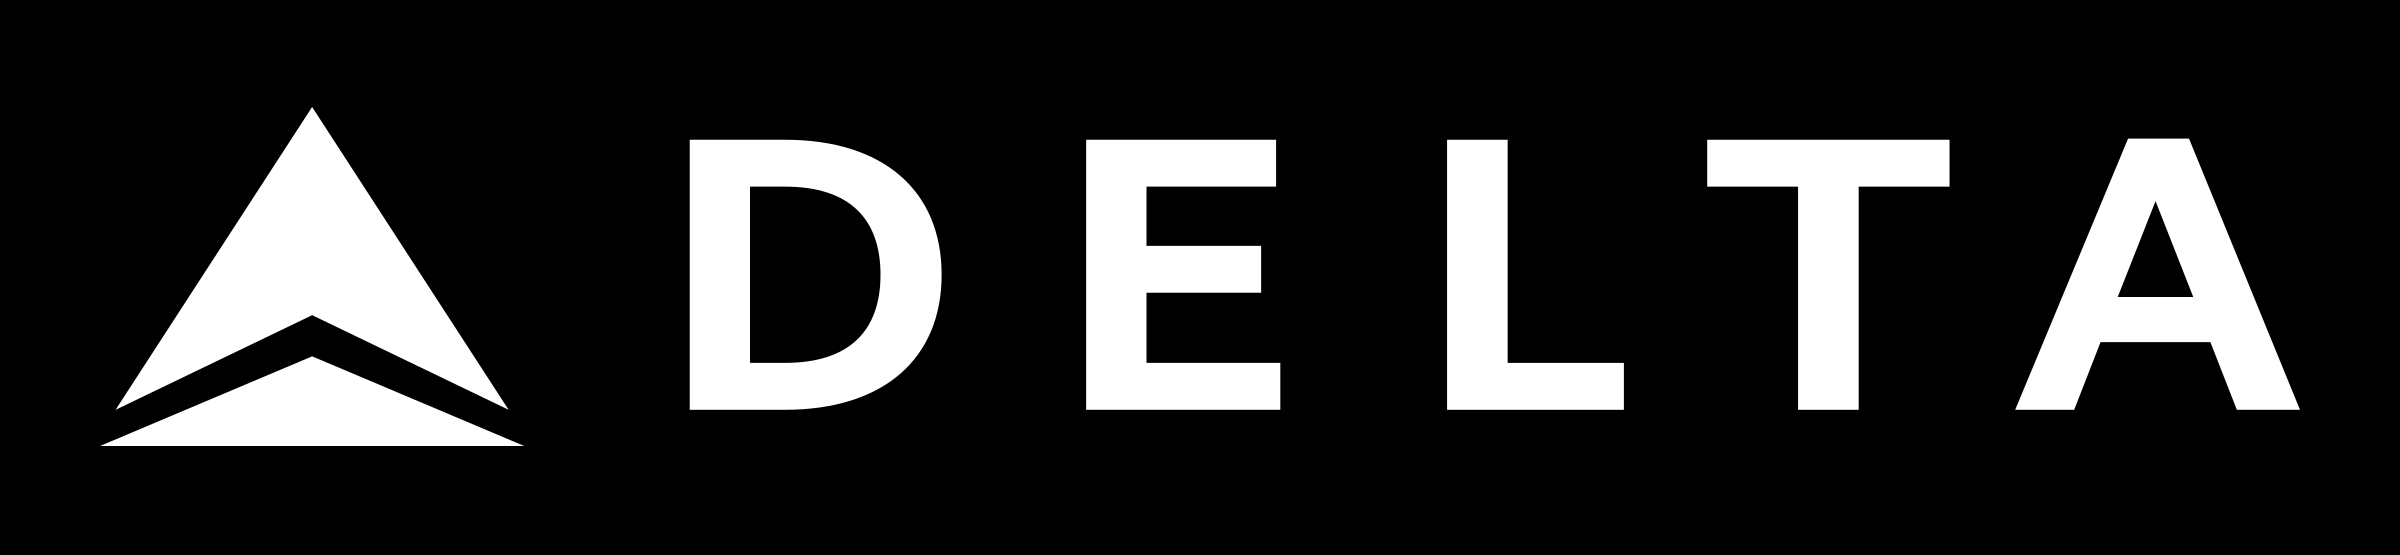 https://seeproductionservices.com/wp-content/uploads/2020/07/delta-logo-black-and-white.png